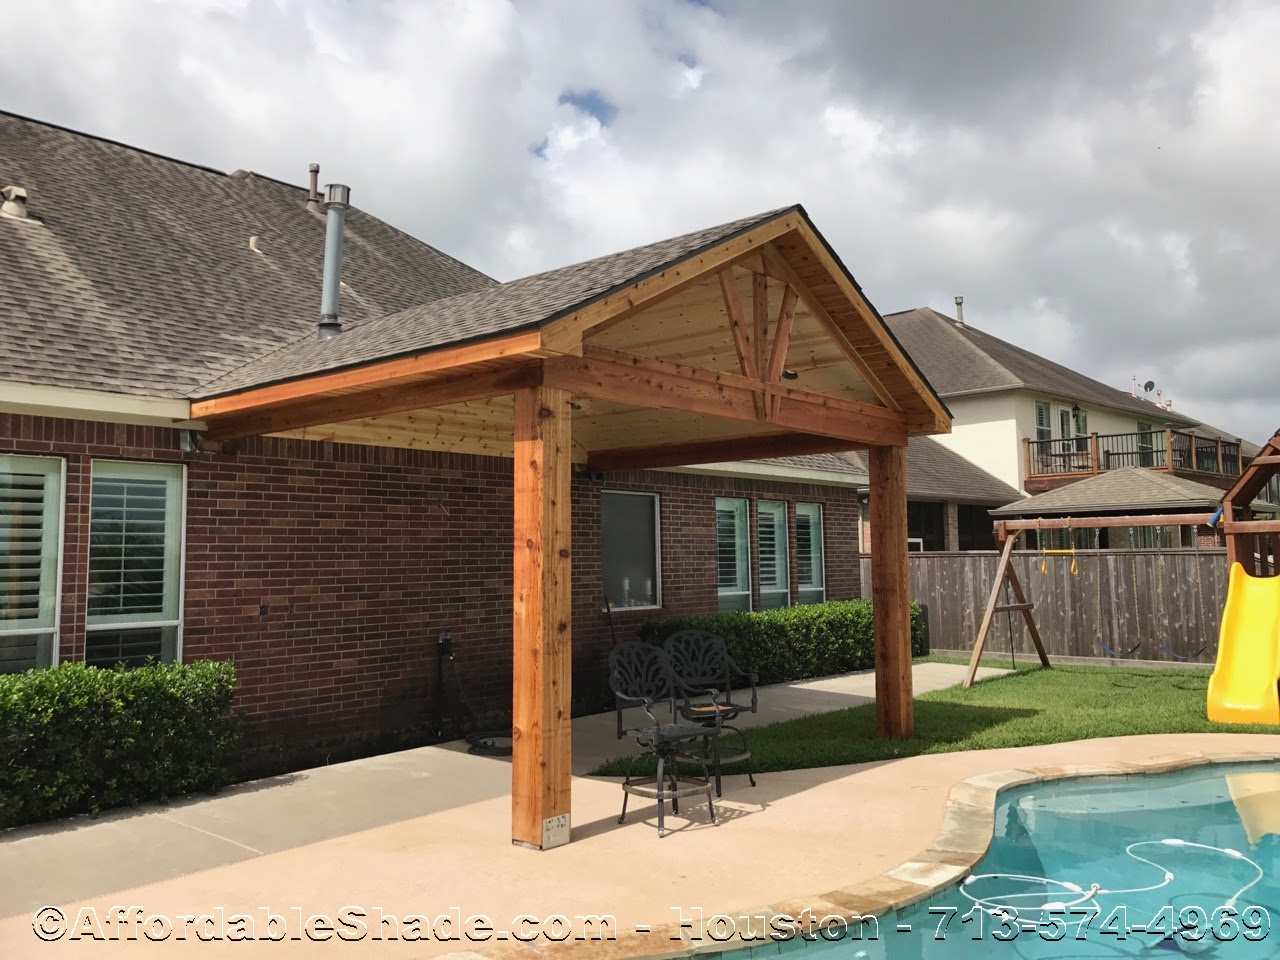 Get 100s Patio Cover Ideas by Viewing Affordable Shade's ...